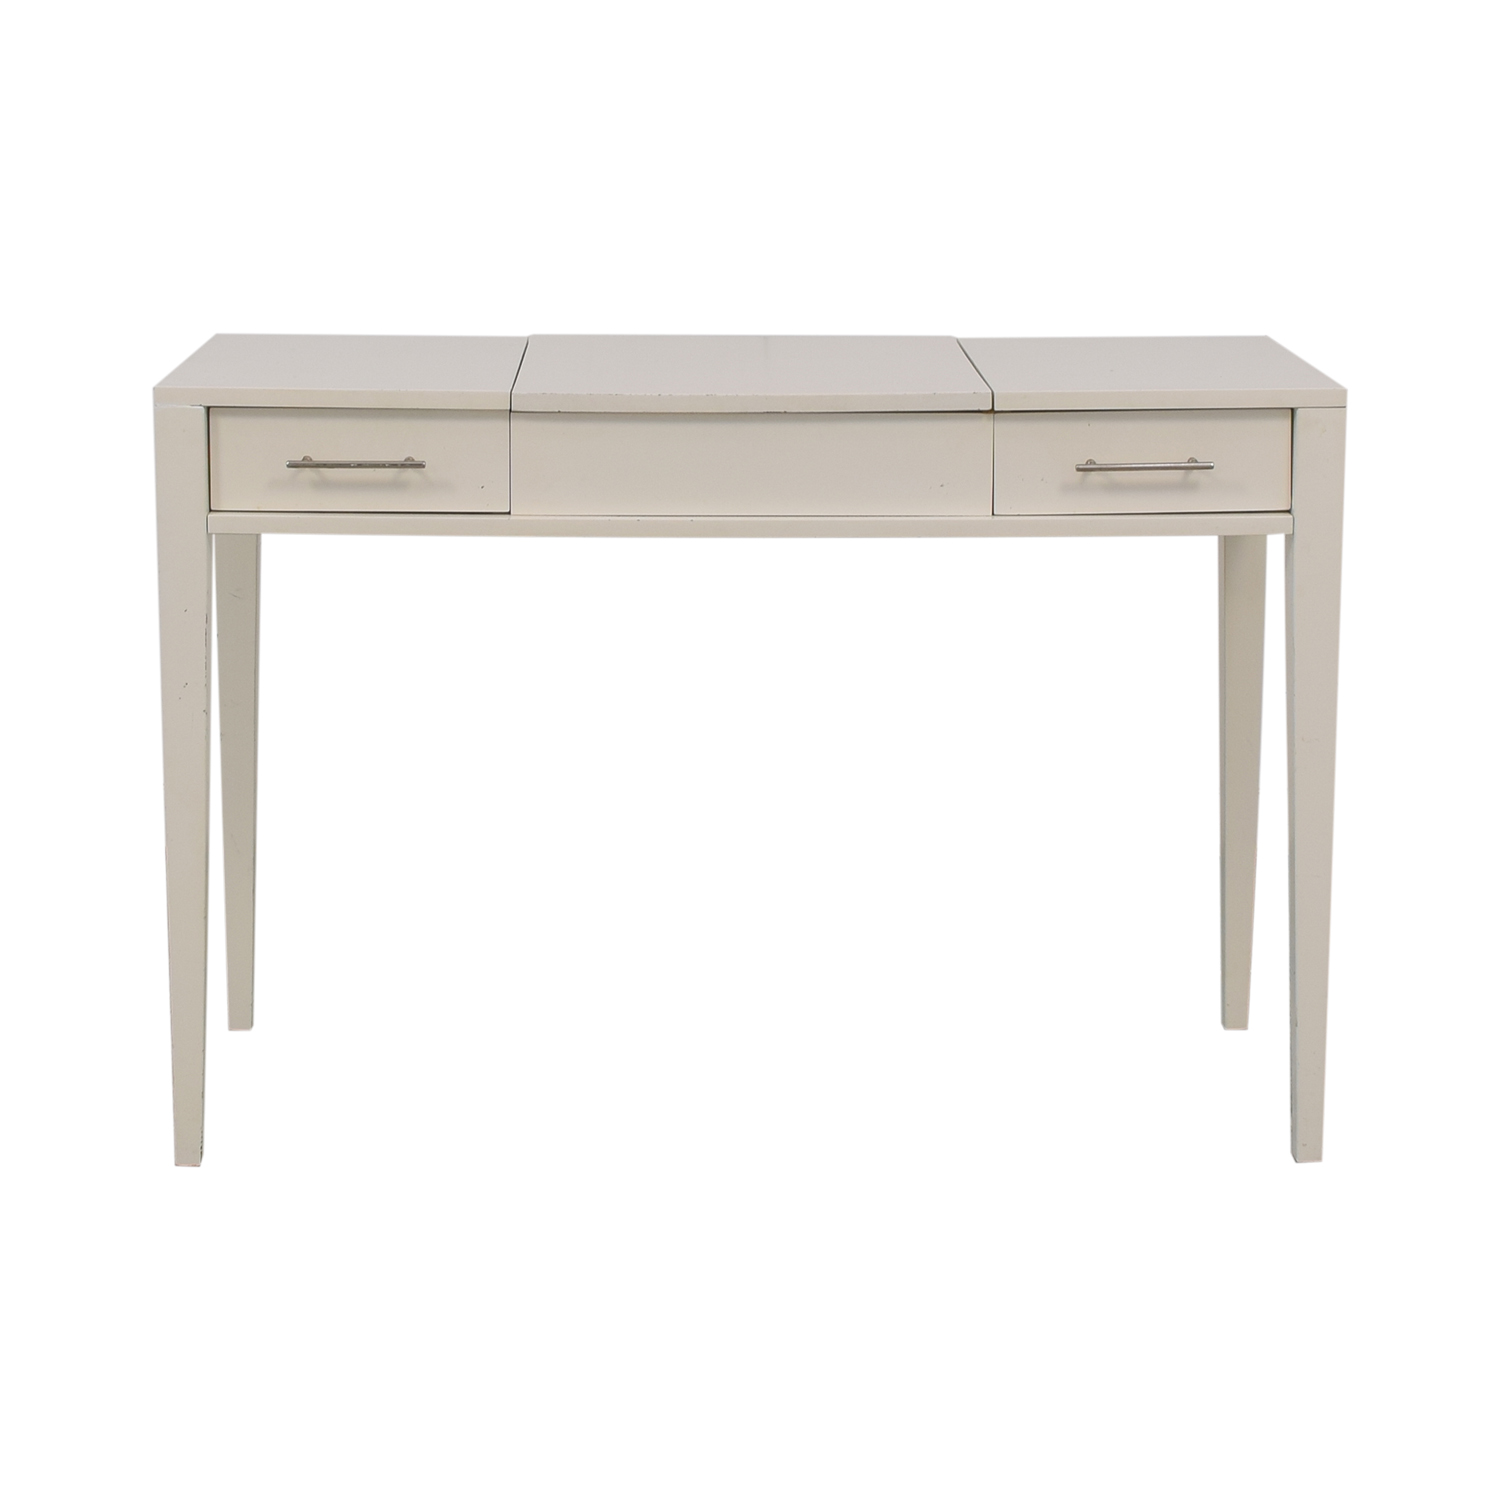 West Elm West Elm Narrow Leg Vanity on sale